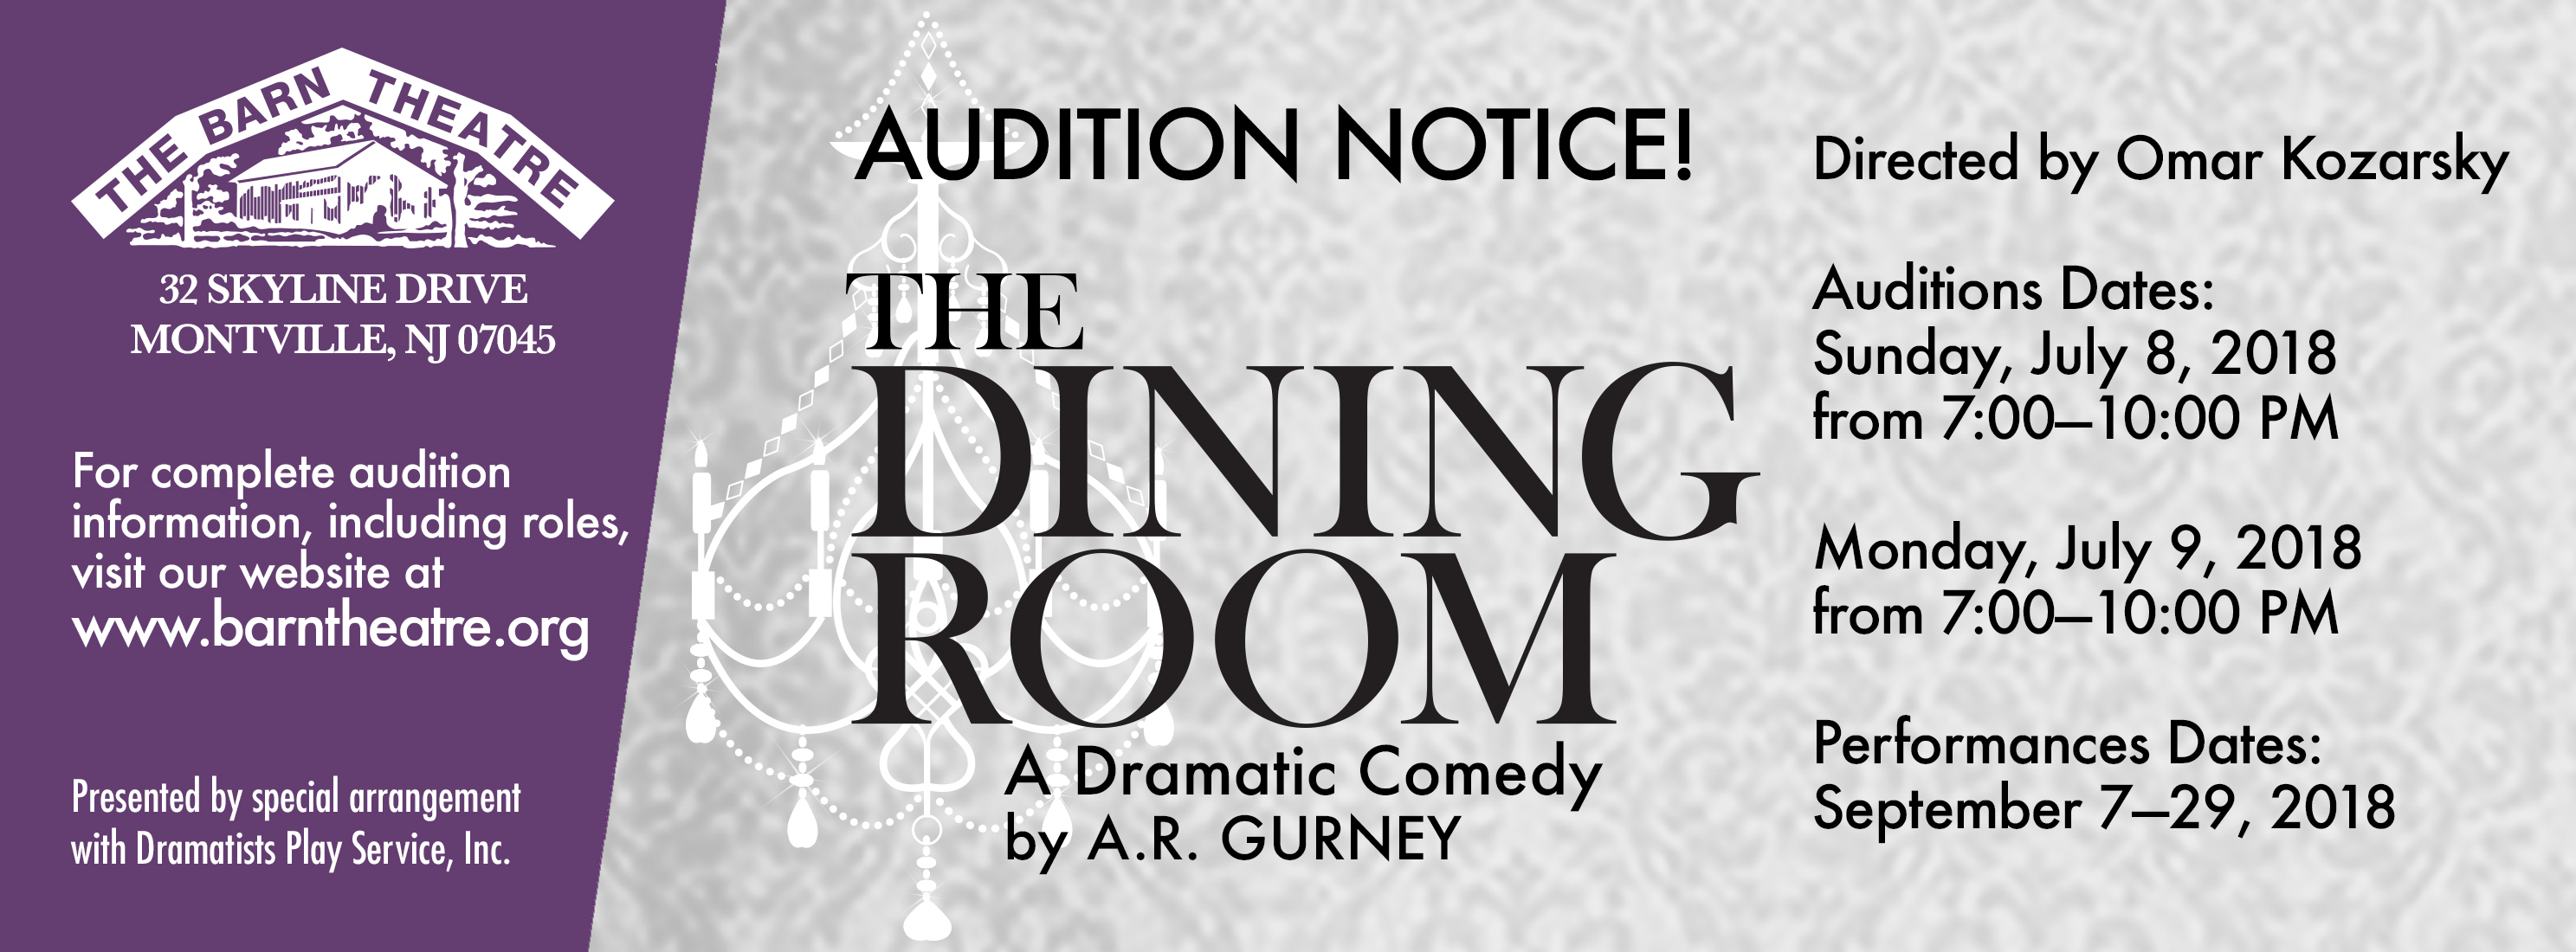 The Dining Room Auditions